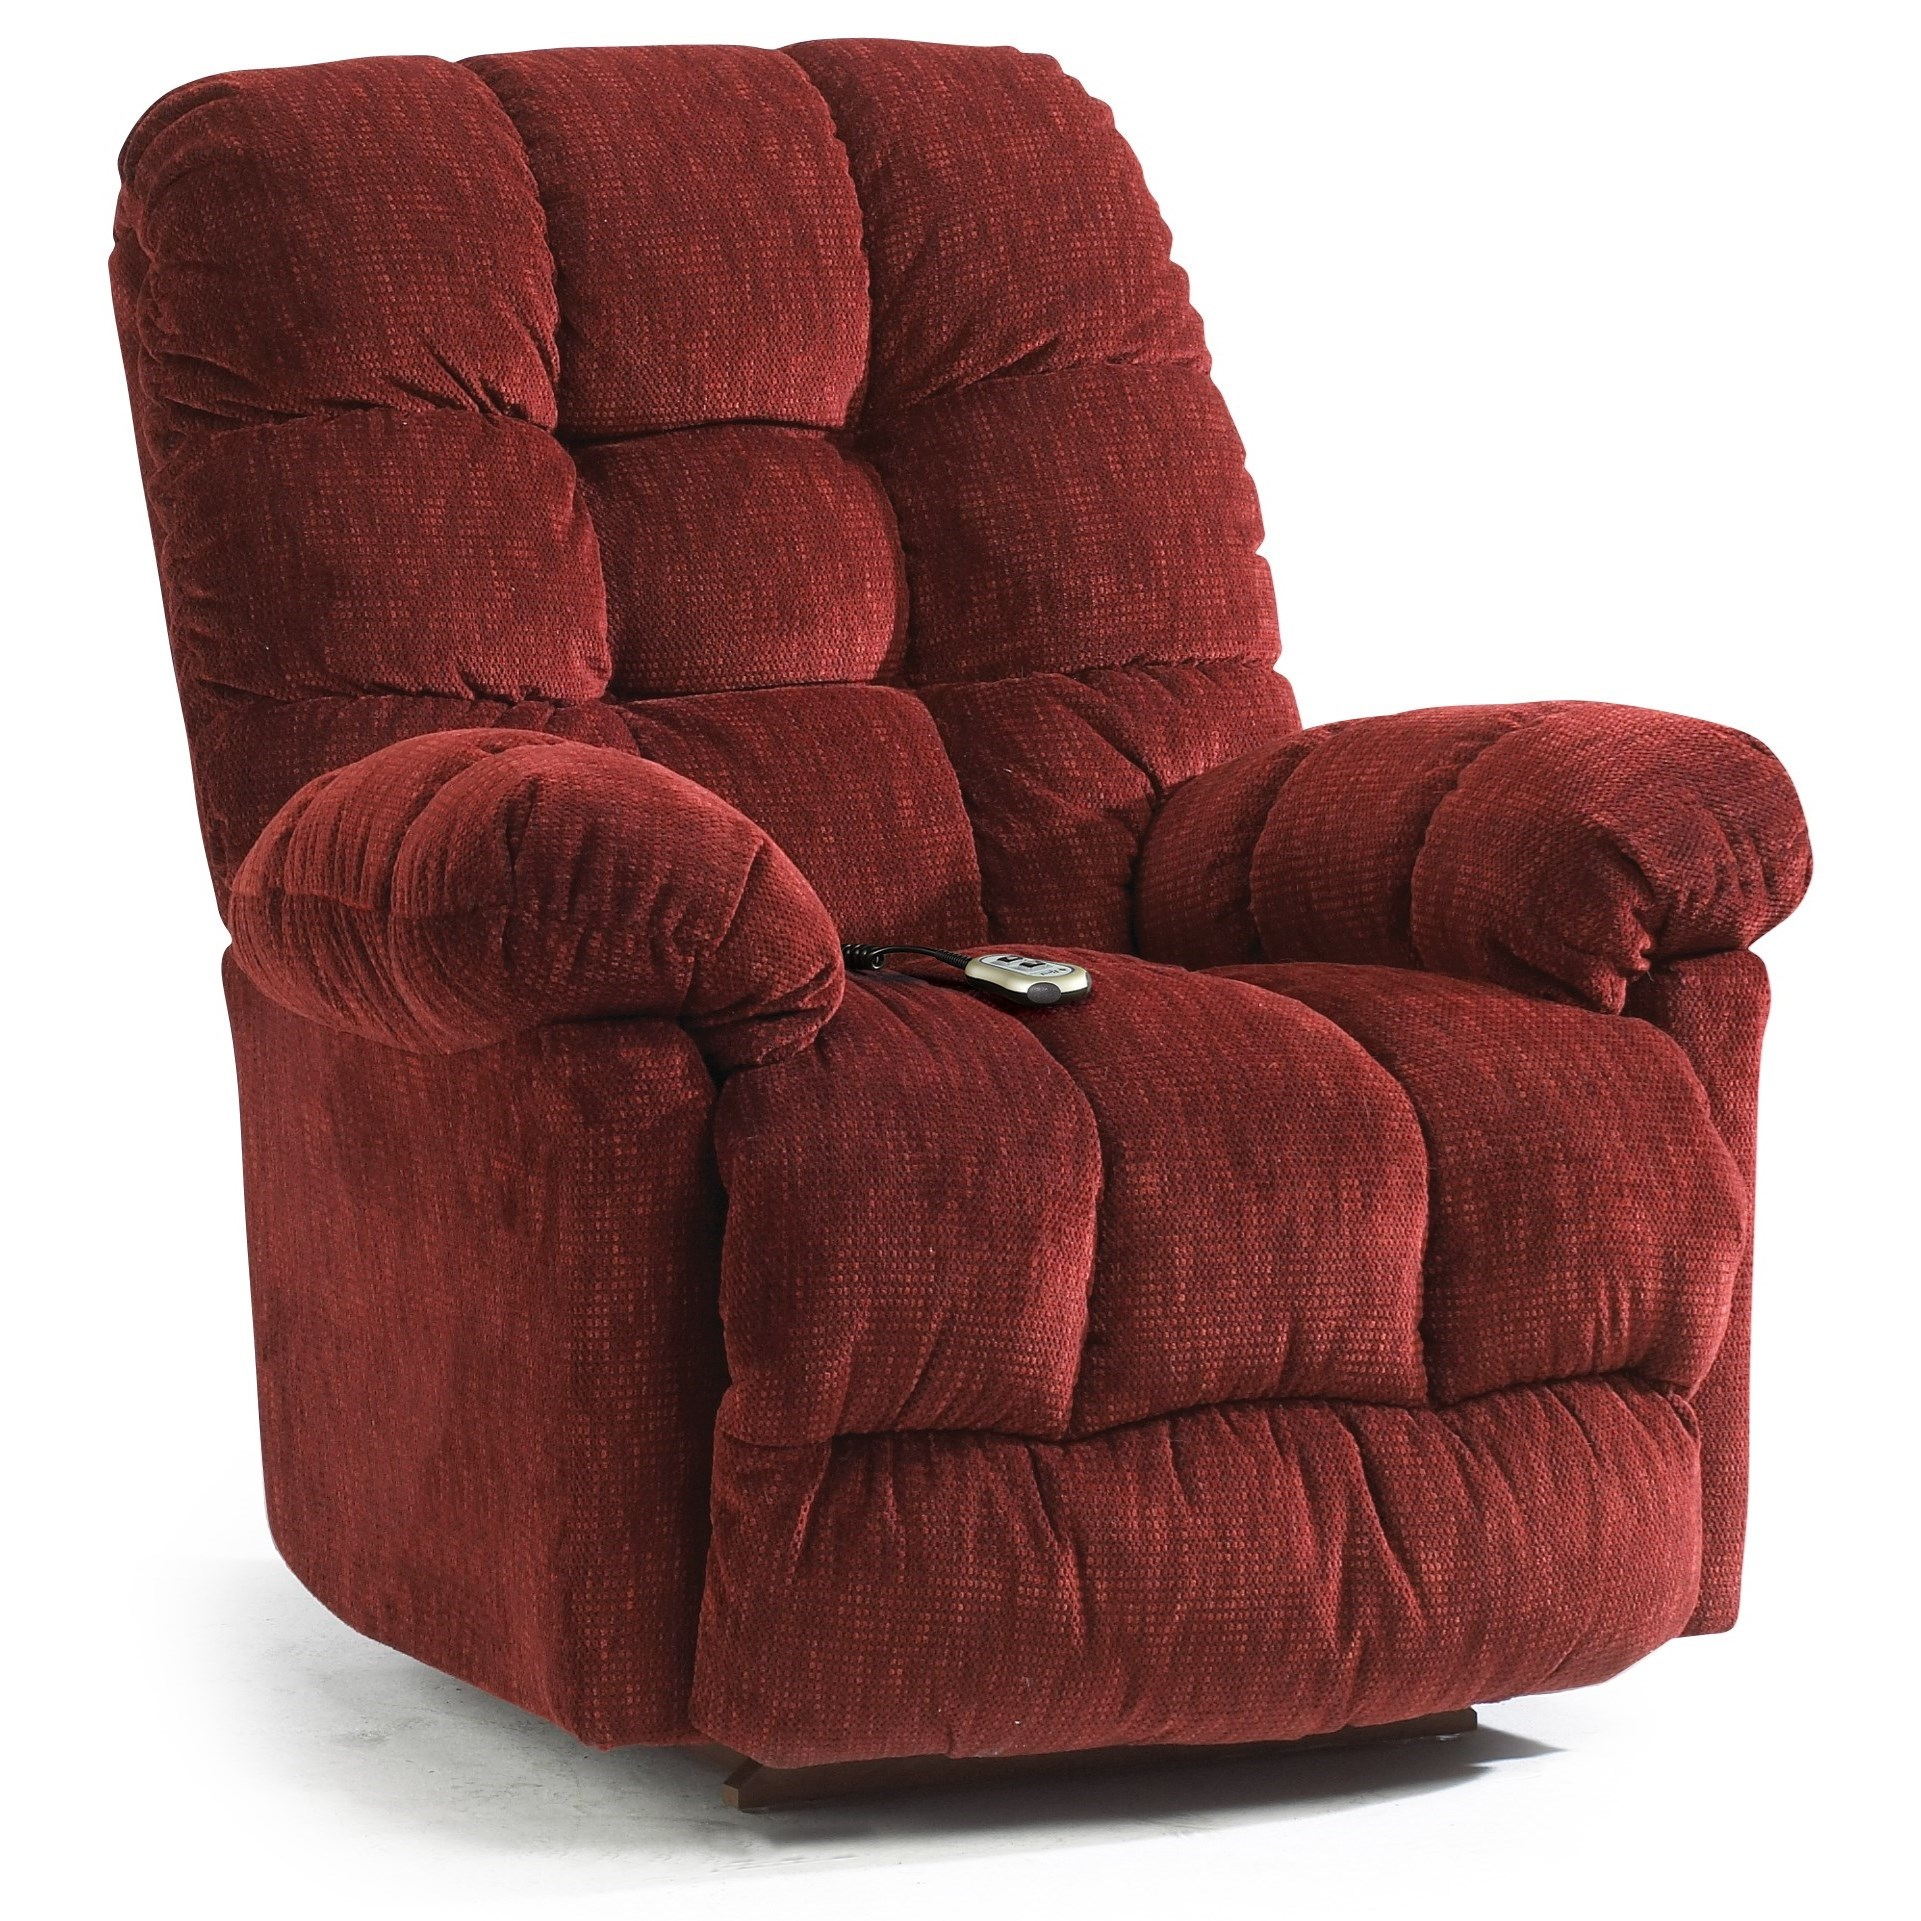 Medium Recliners Brosmer Power Lift Recliner w/ Massage & Ht by Best Home Furnishings at Baer's Furniture